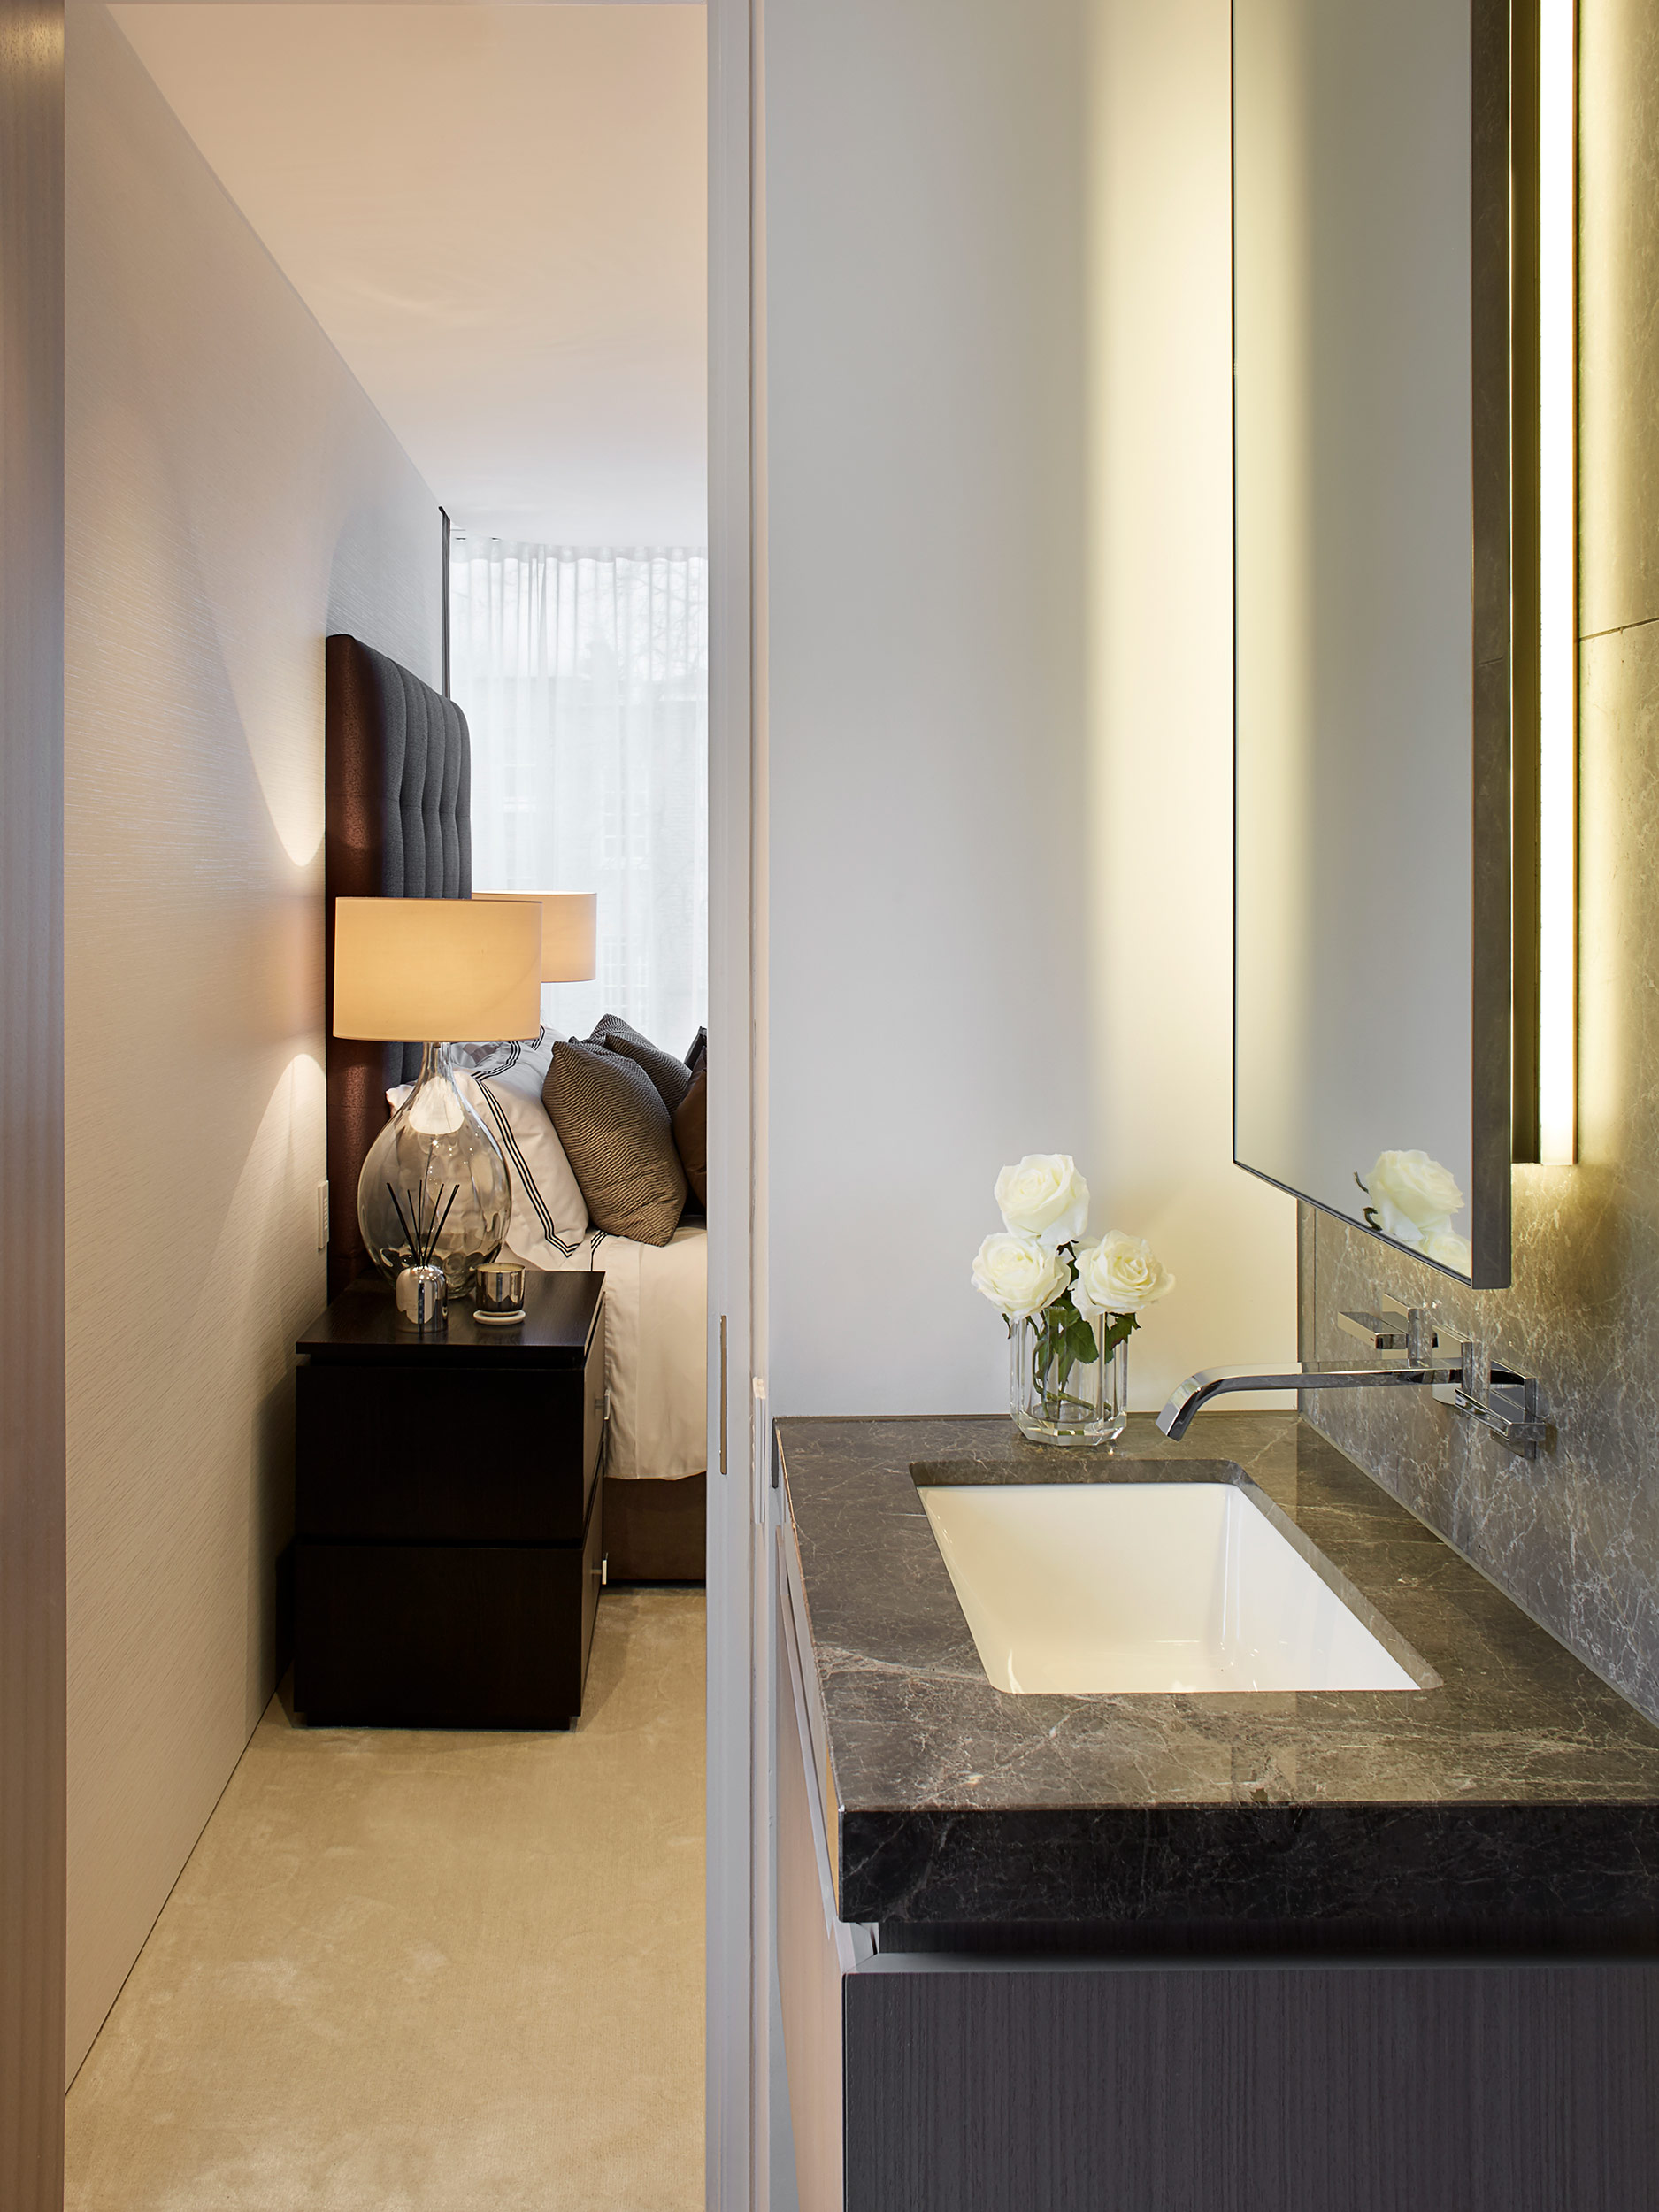 West One Bathrooms Case Studies Ashberg House 3b